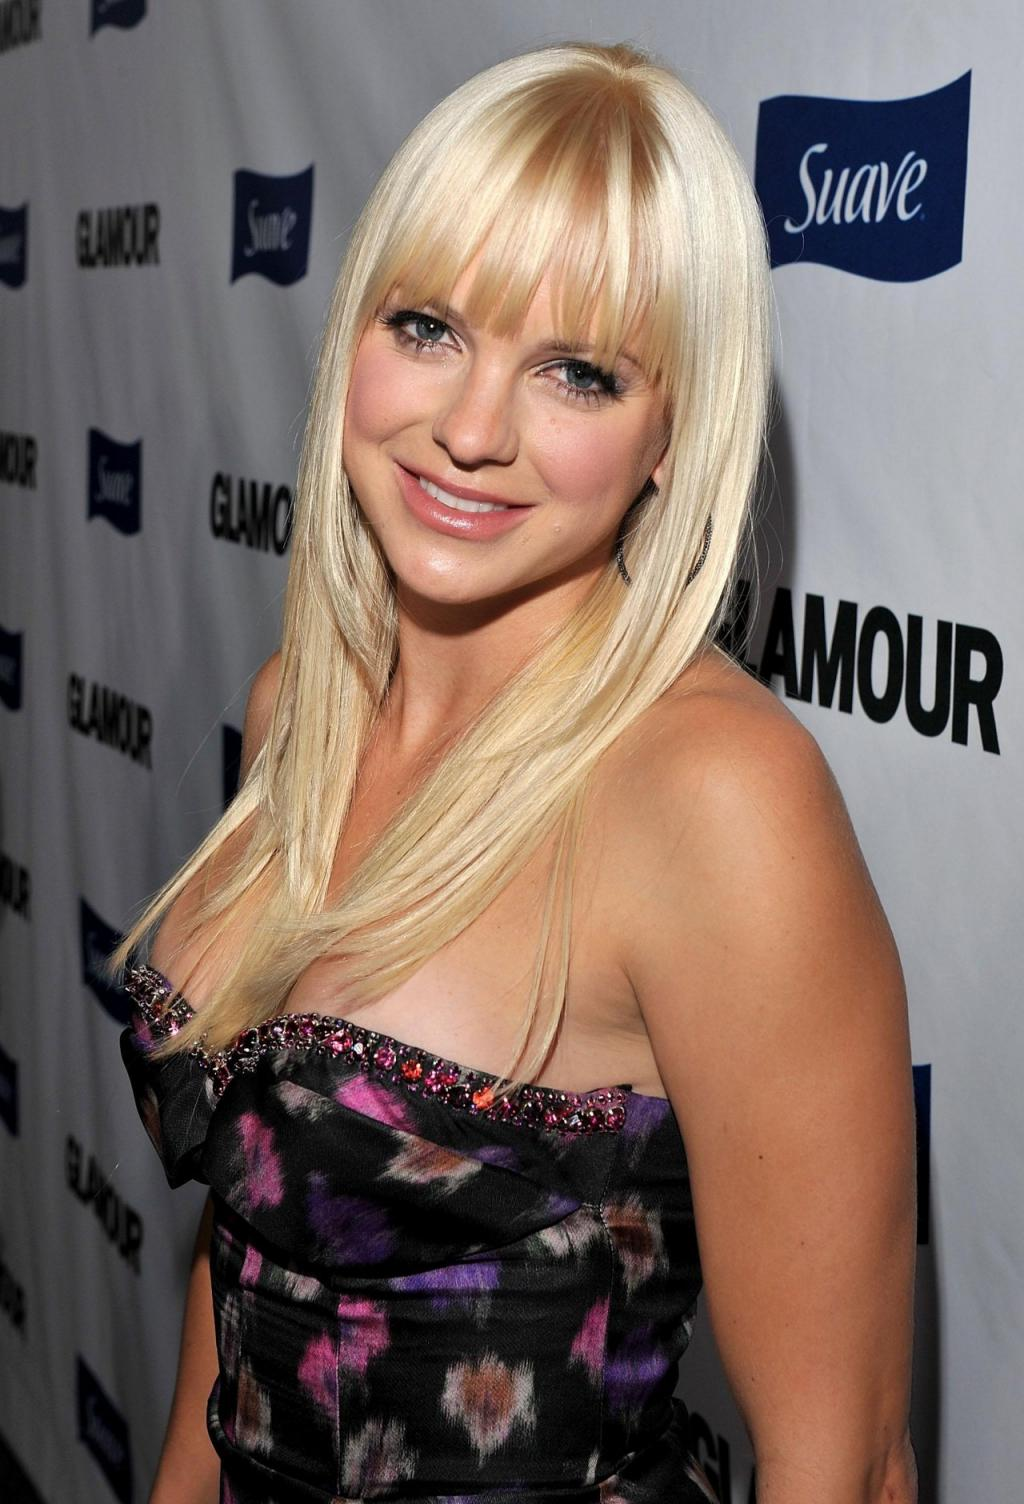 Anna Faris Plastic Surgery - After She Divorced